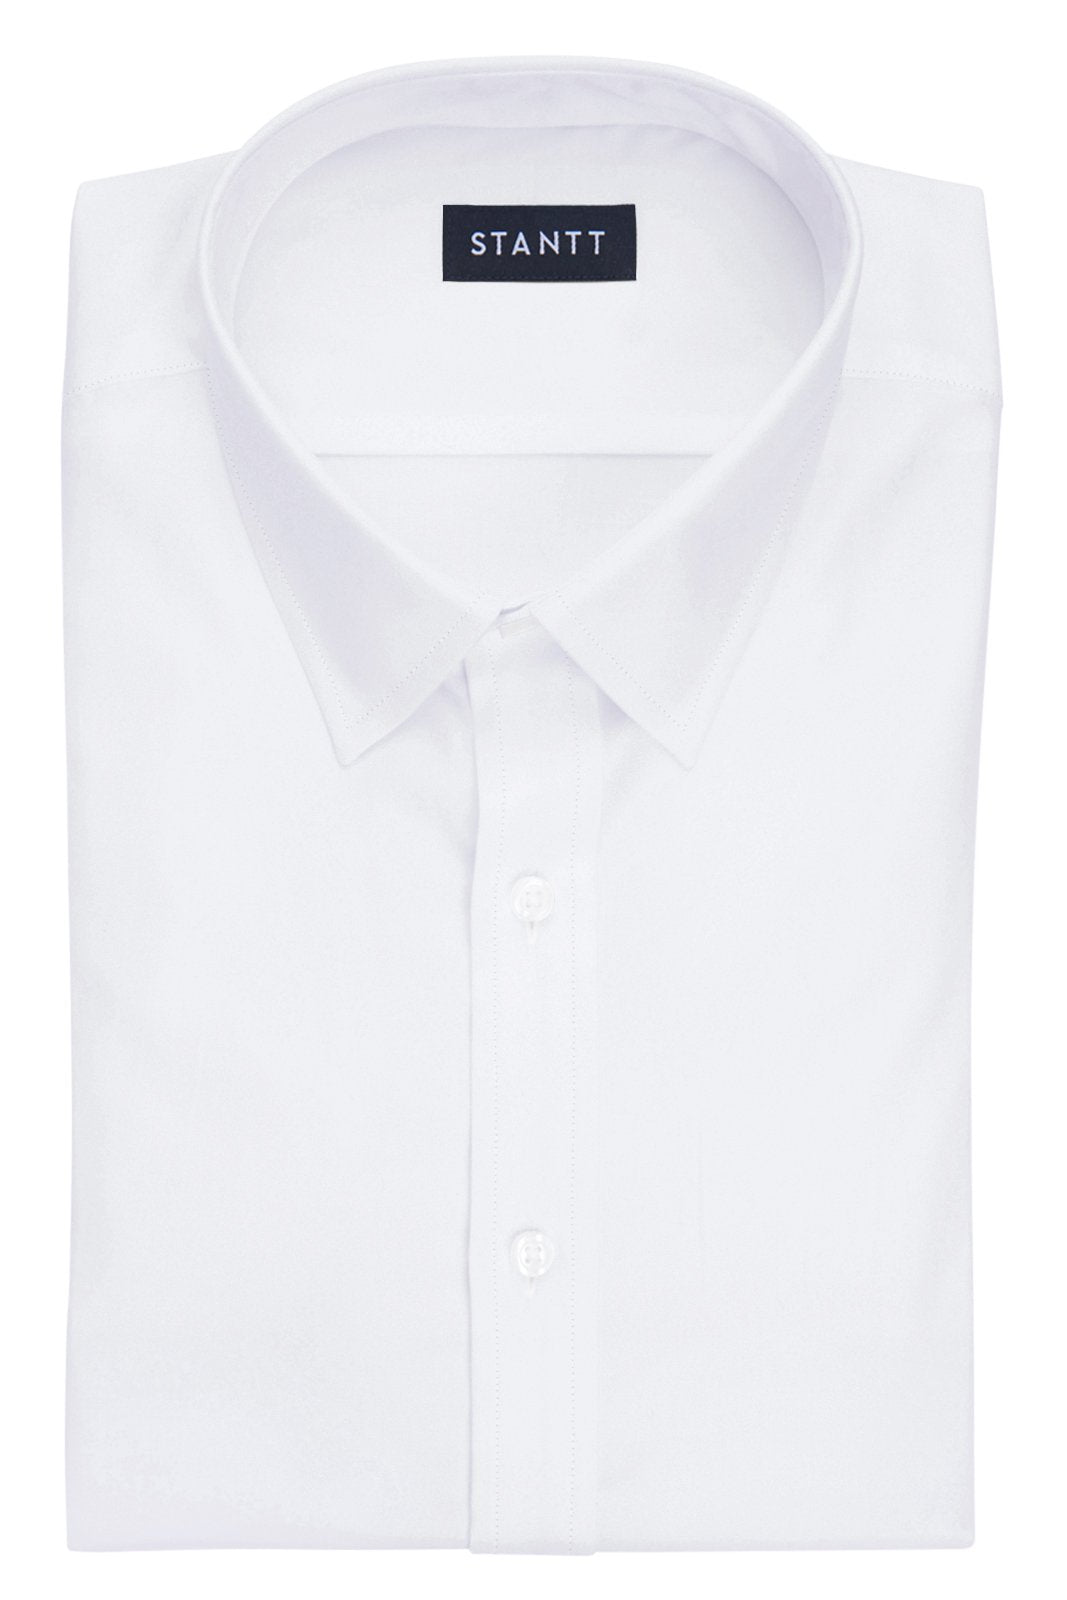 Wrinkle-Resistant White Oxford: Semi-Spread Collar, French Cuff